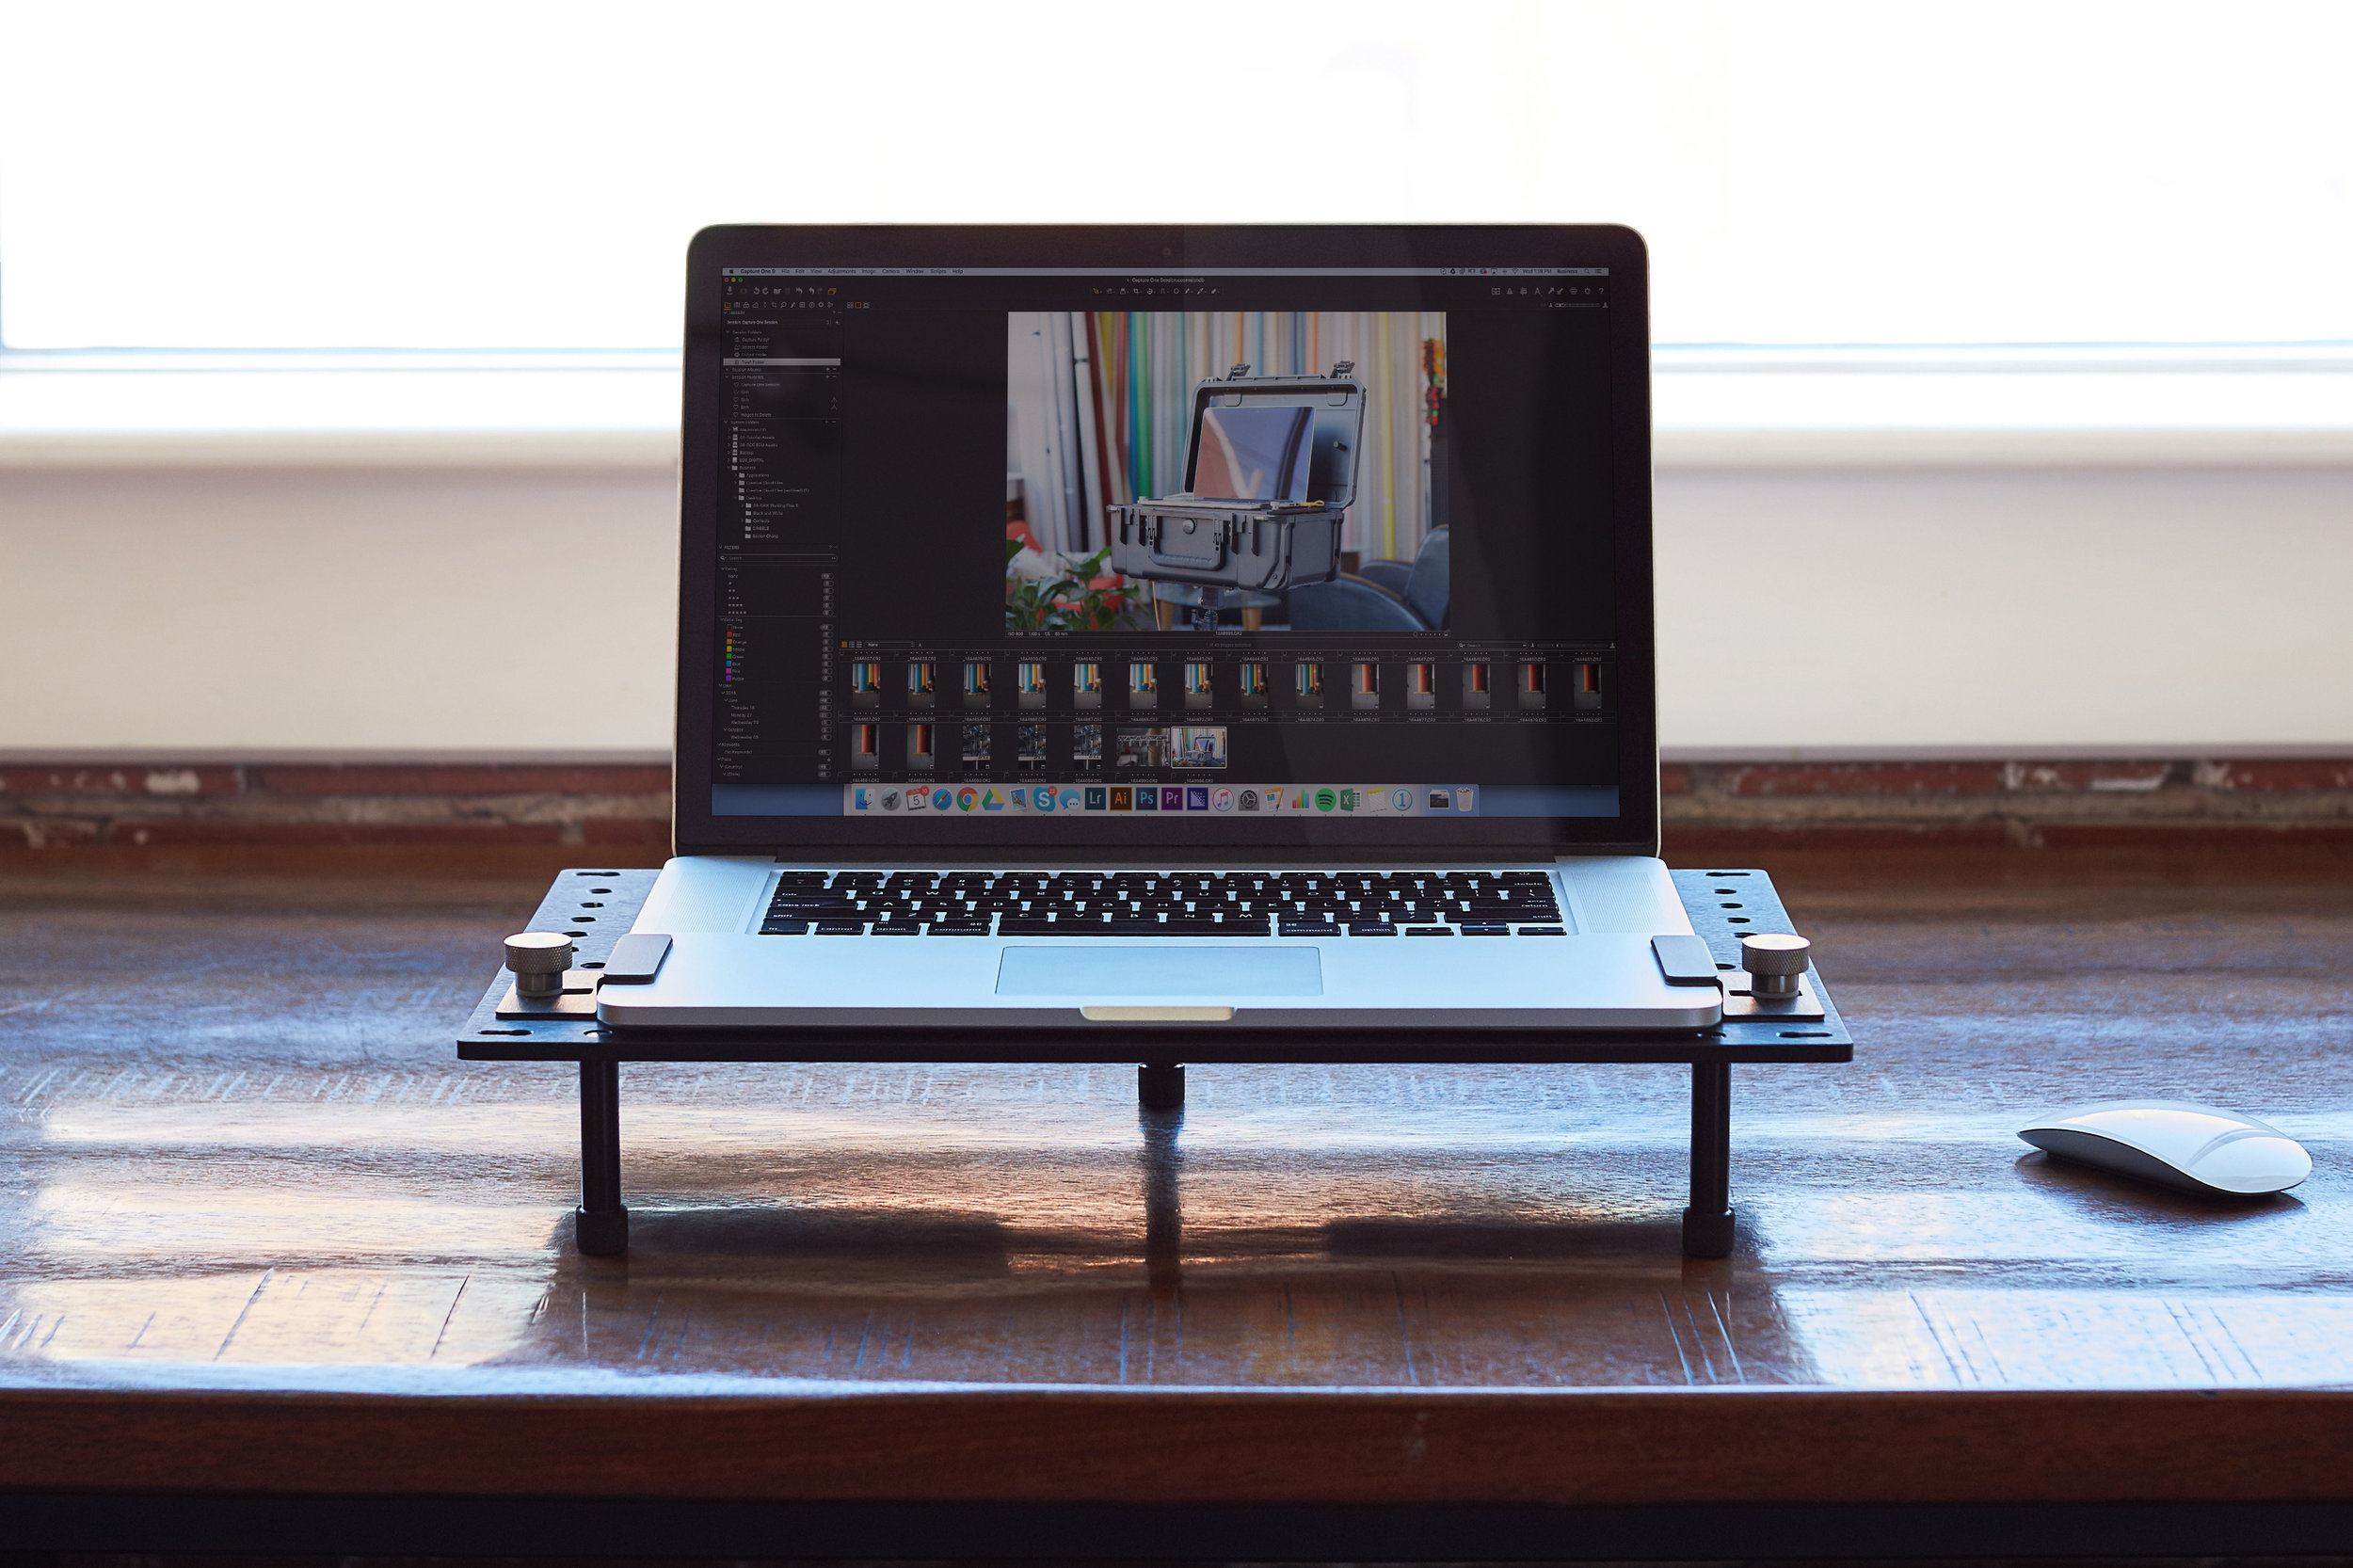 The DigiPlate removed and placed on a desk. The three legs are included to allow elevated operation on a table.